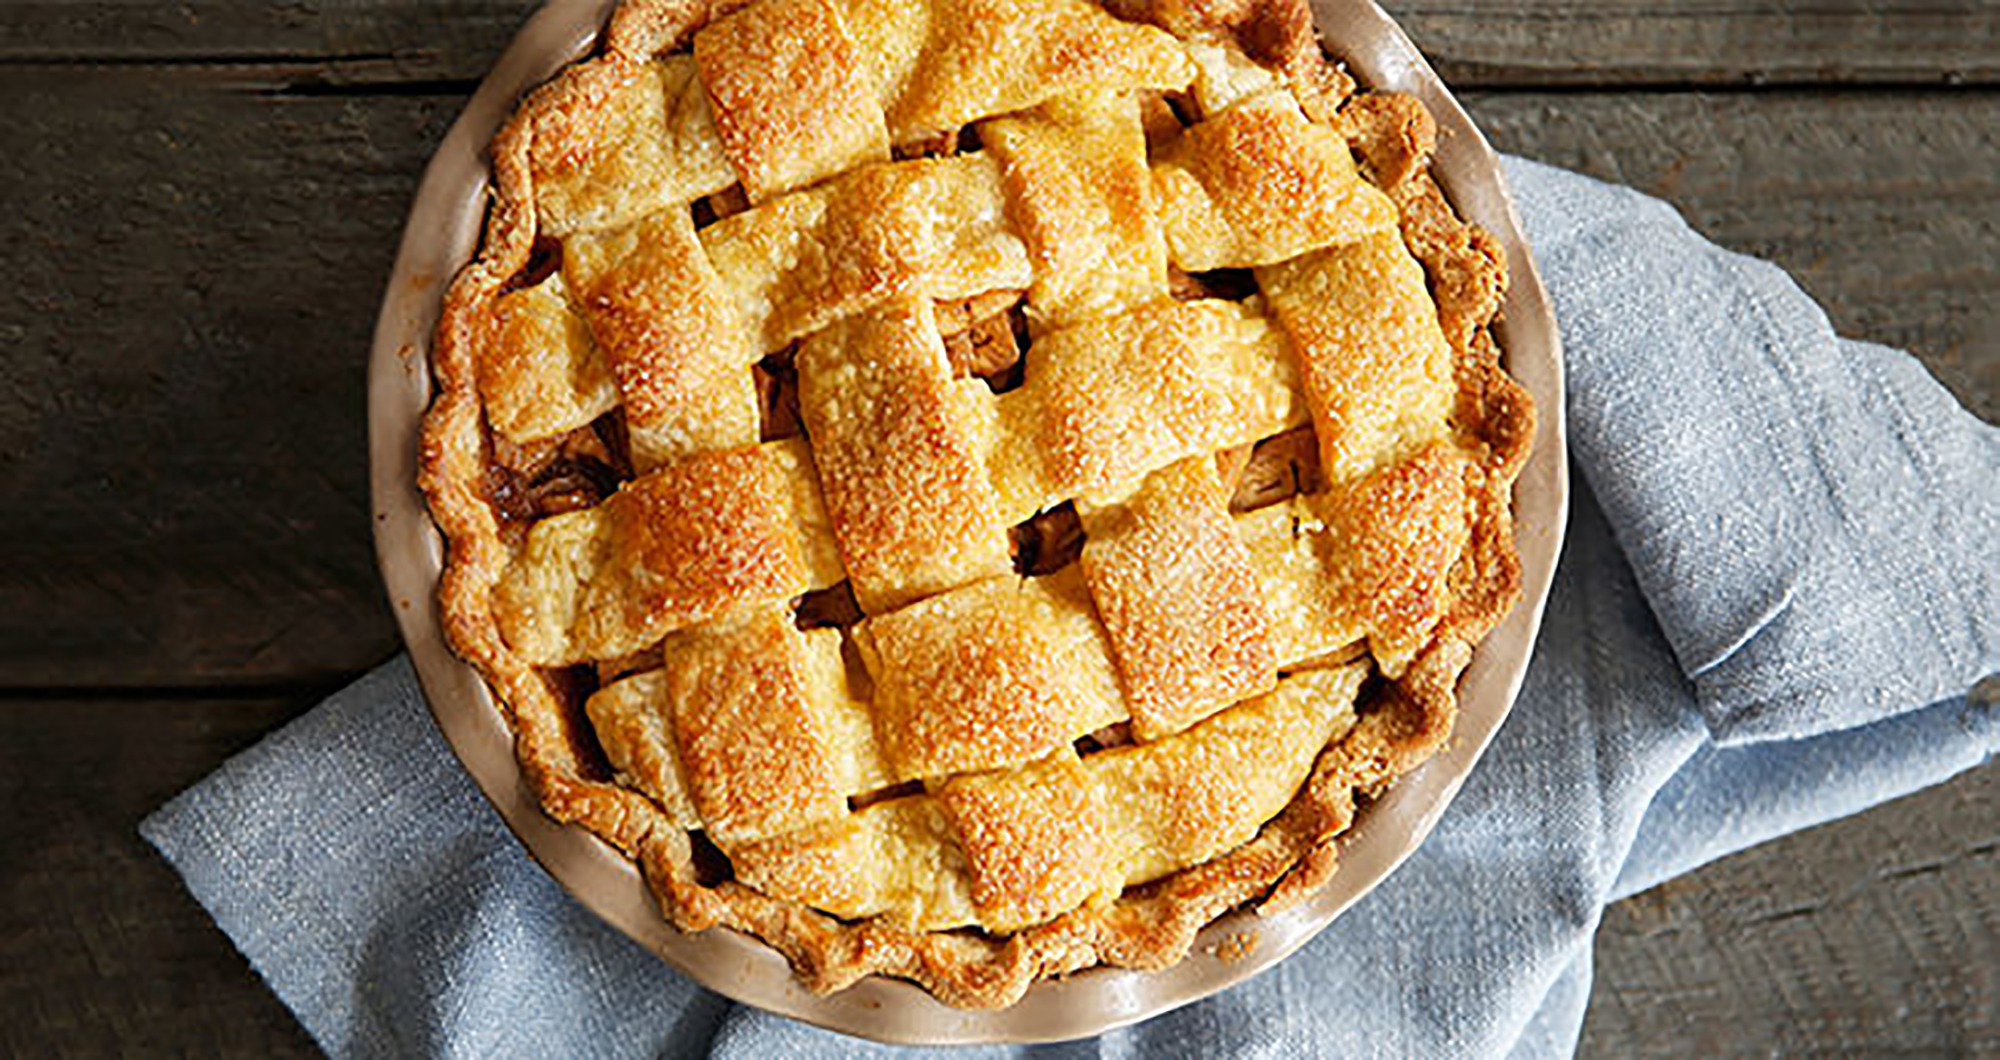 Homemade Deep Dish Apple Pie Recipe With Brown Sugar And Vanilla